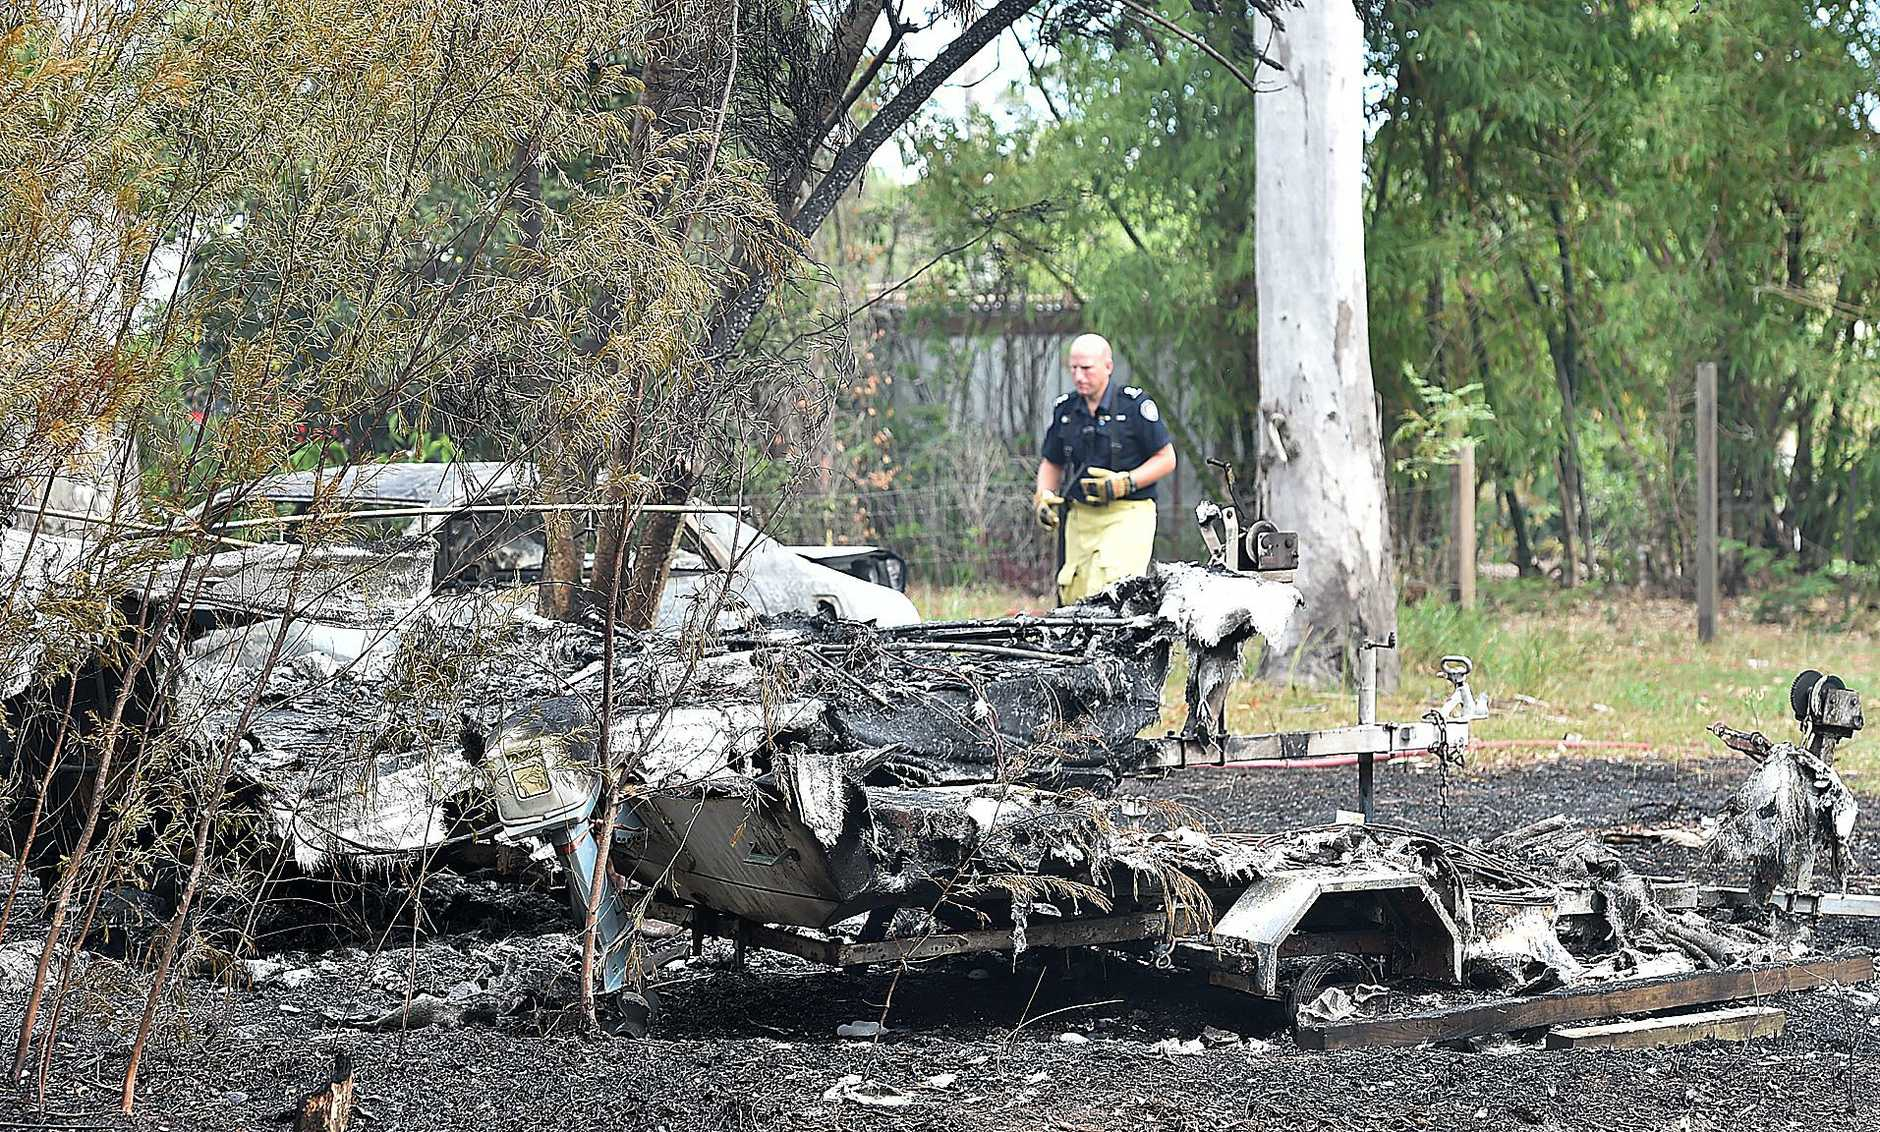 Fire in the backyard of a property on Pacific Haven Circuit where two cars and two boats were engulfed by fire.